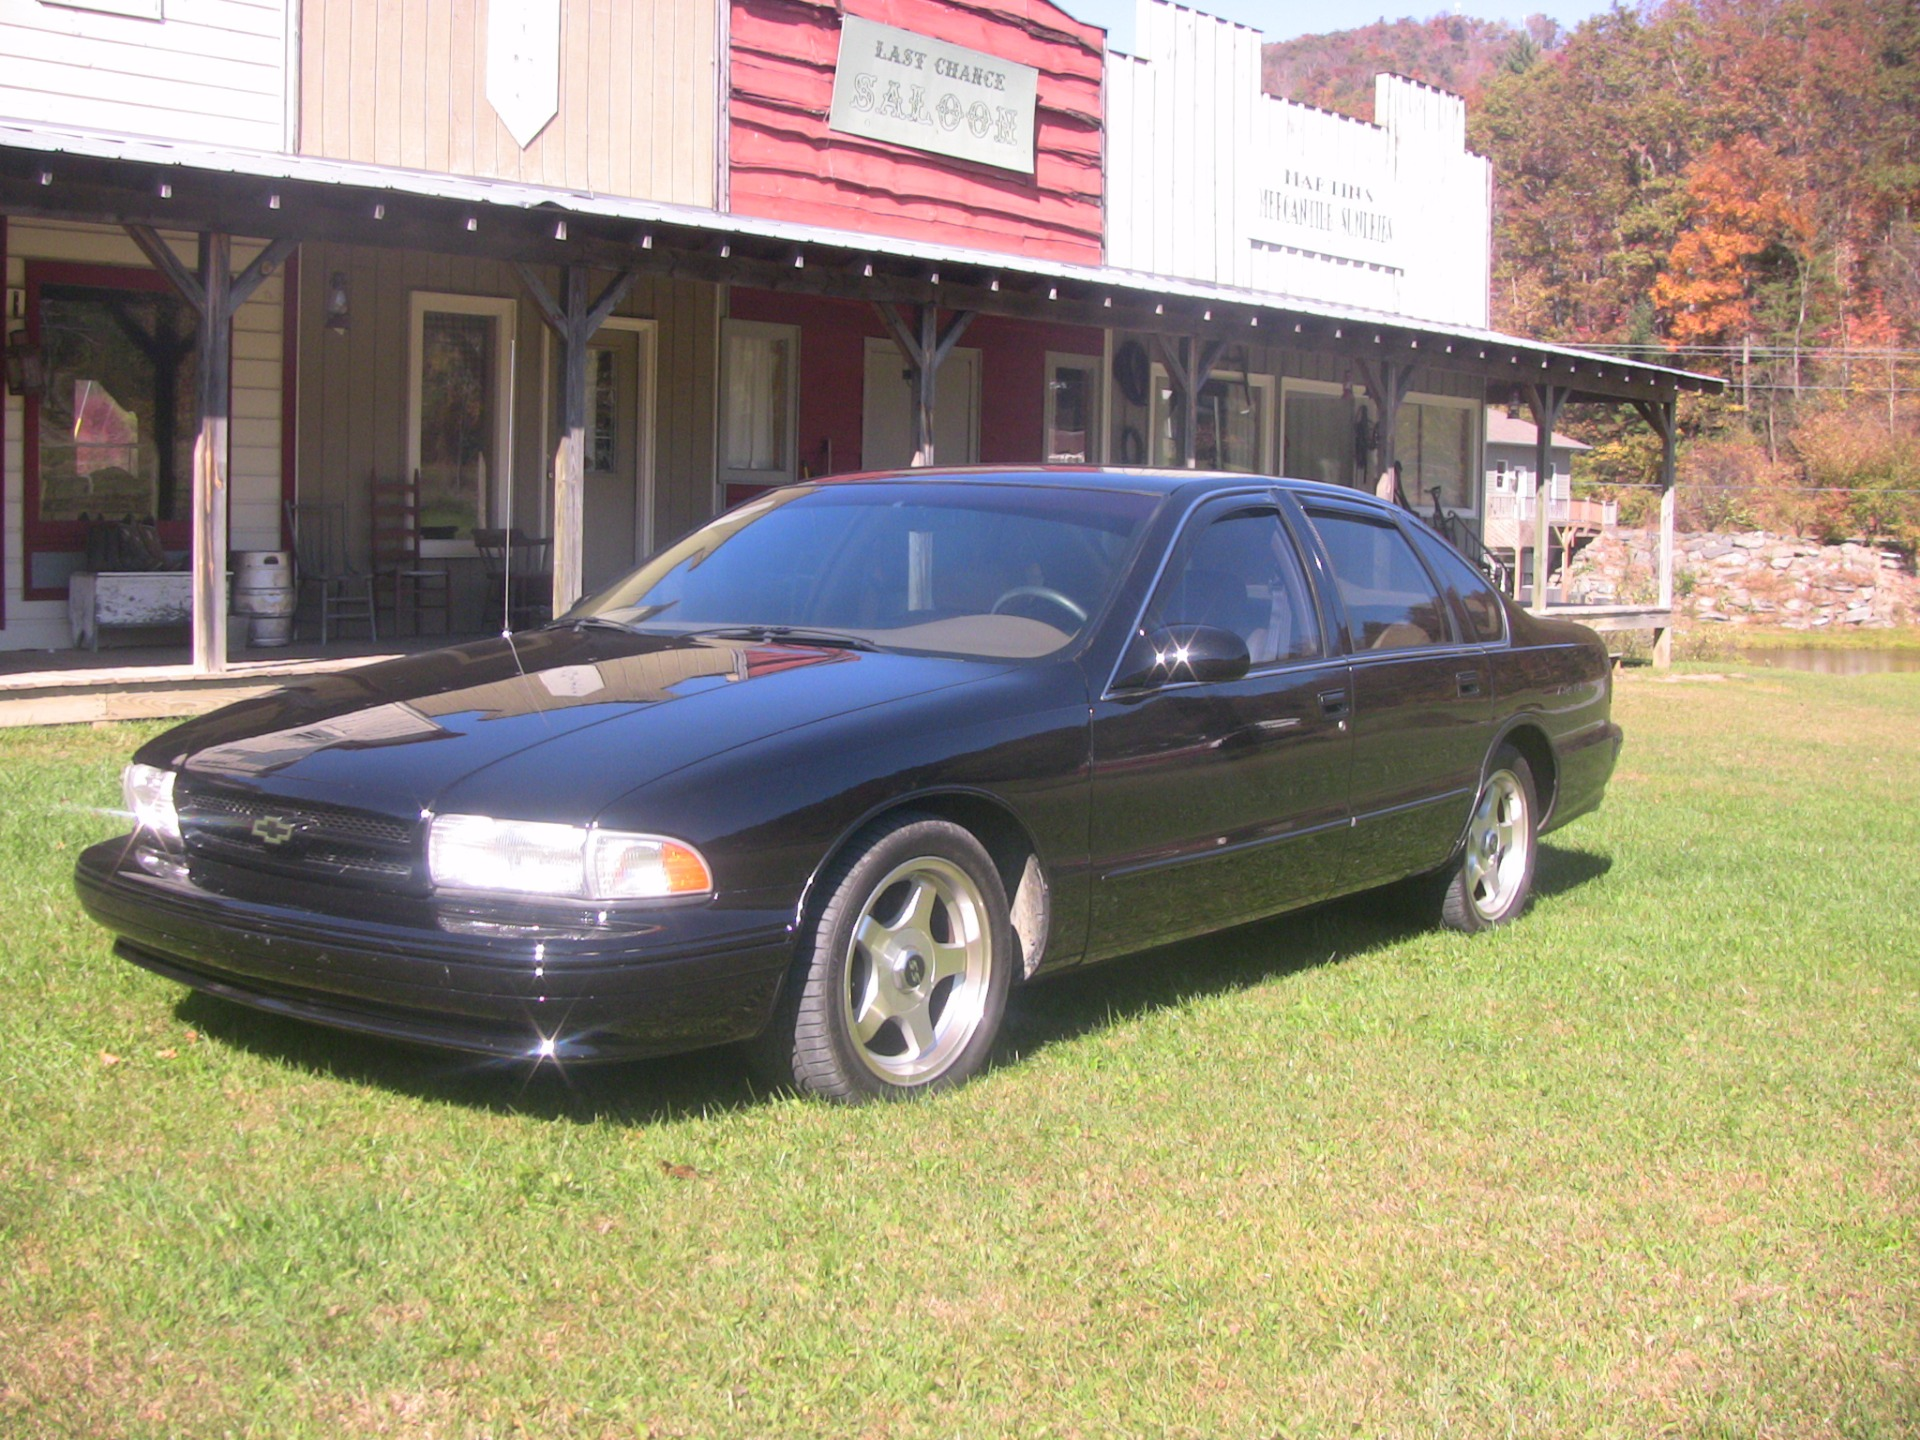 Used 1995 Chevrolet Caprice SS For Sale ($10,700) | Classic